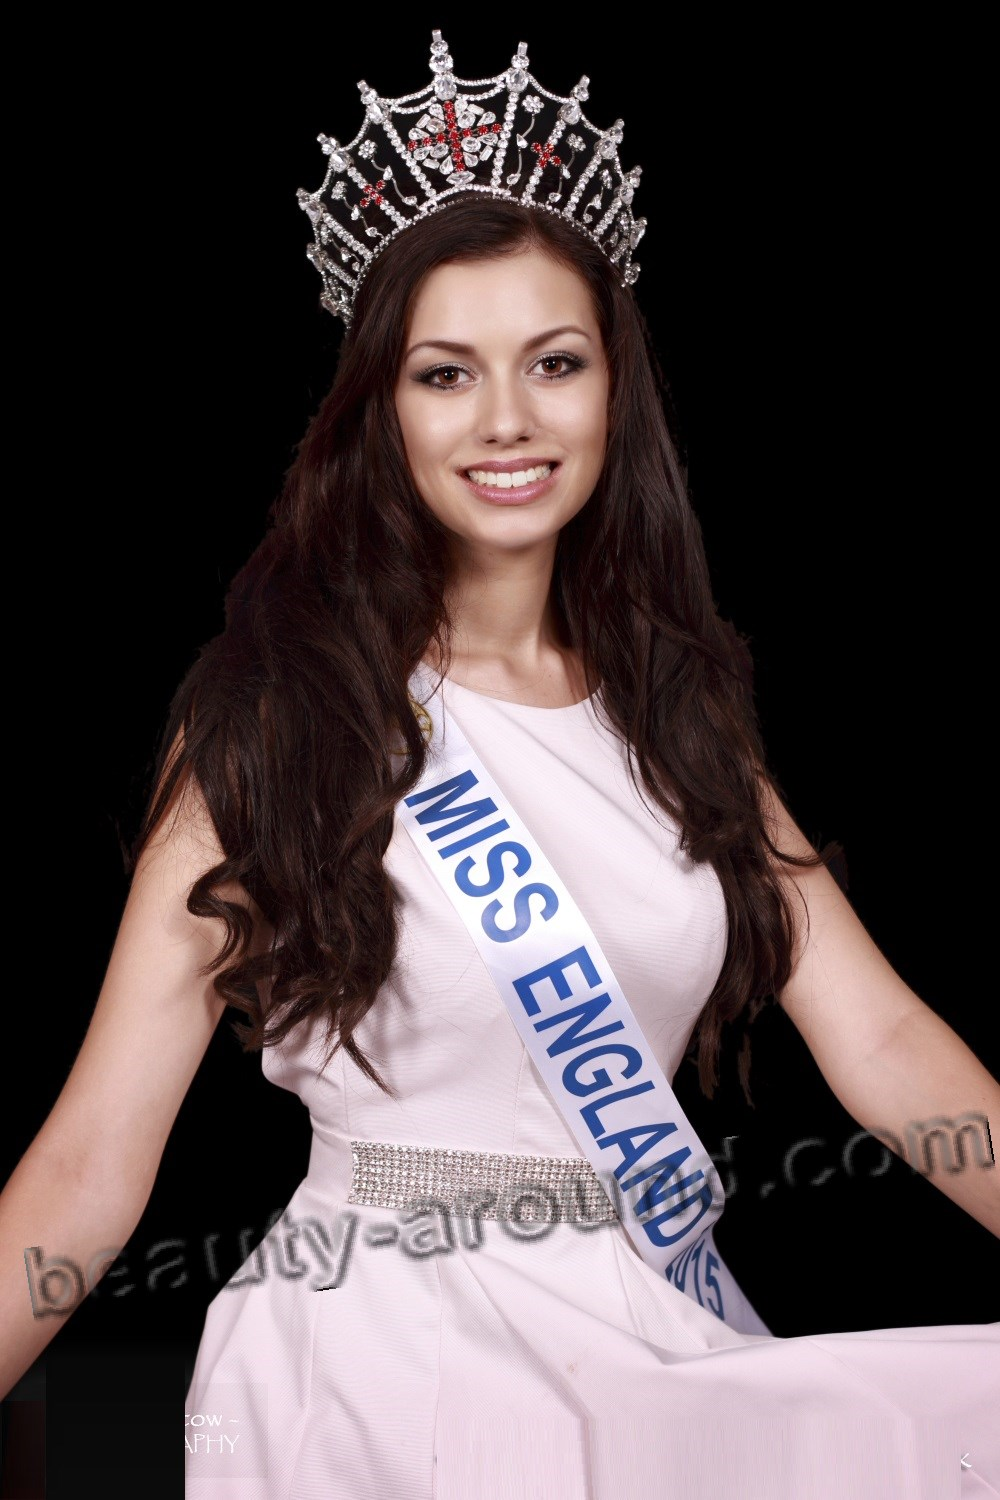 Natasha Hemmings Miss England-2015 photo